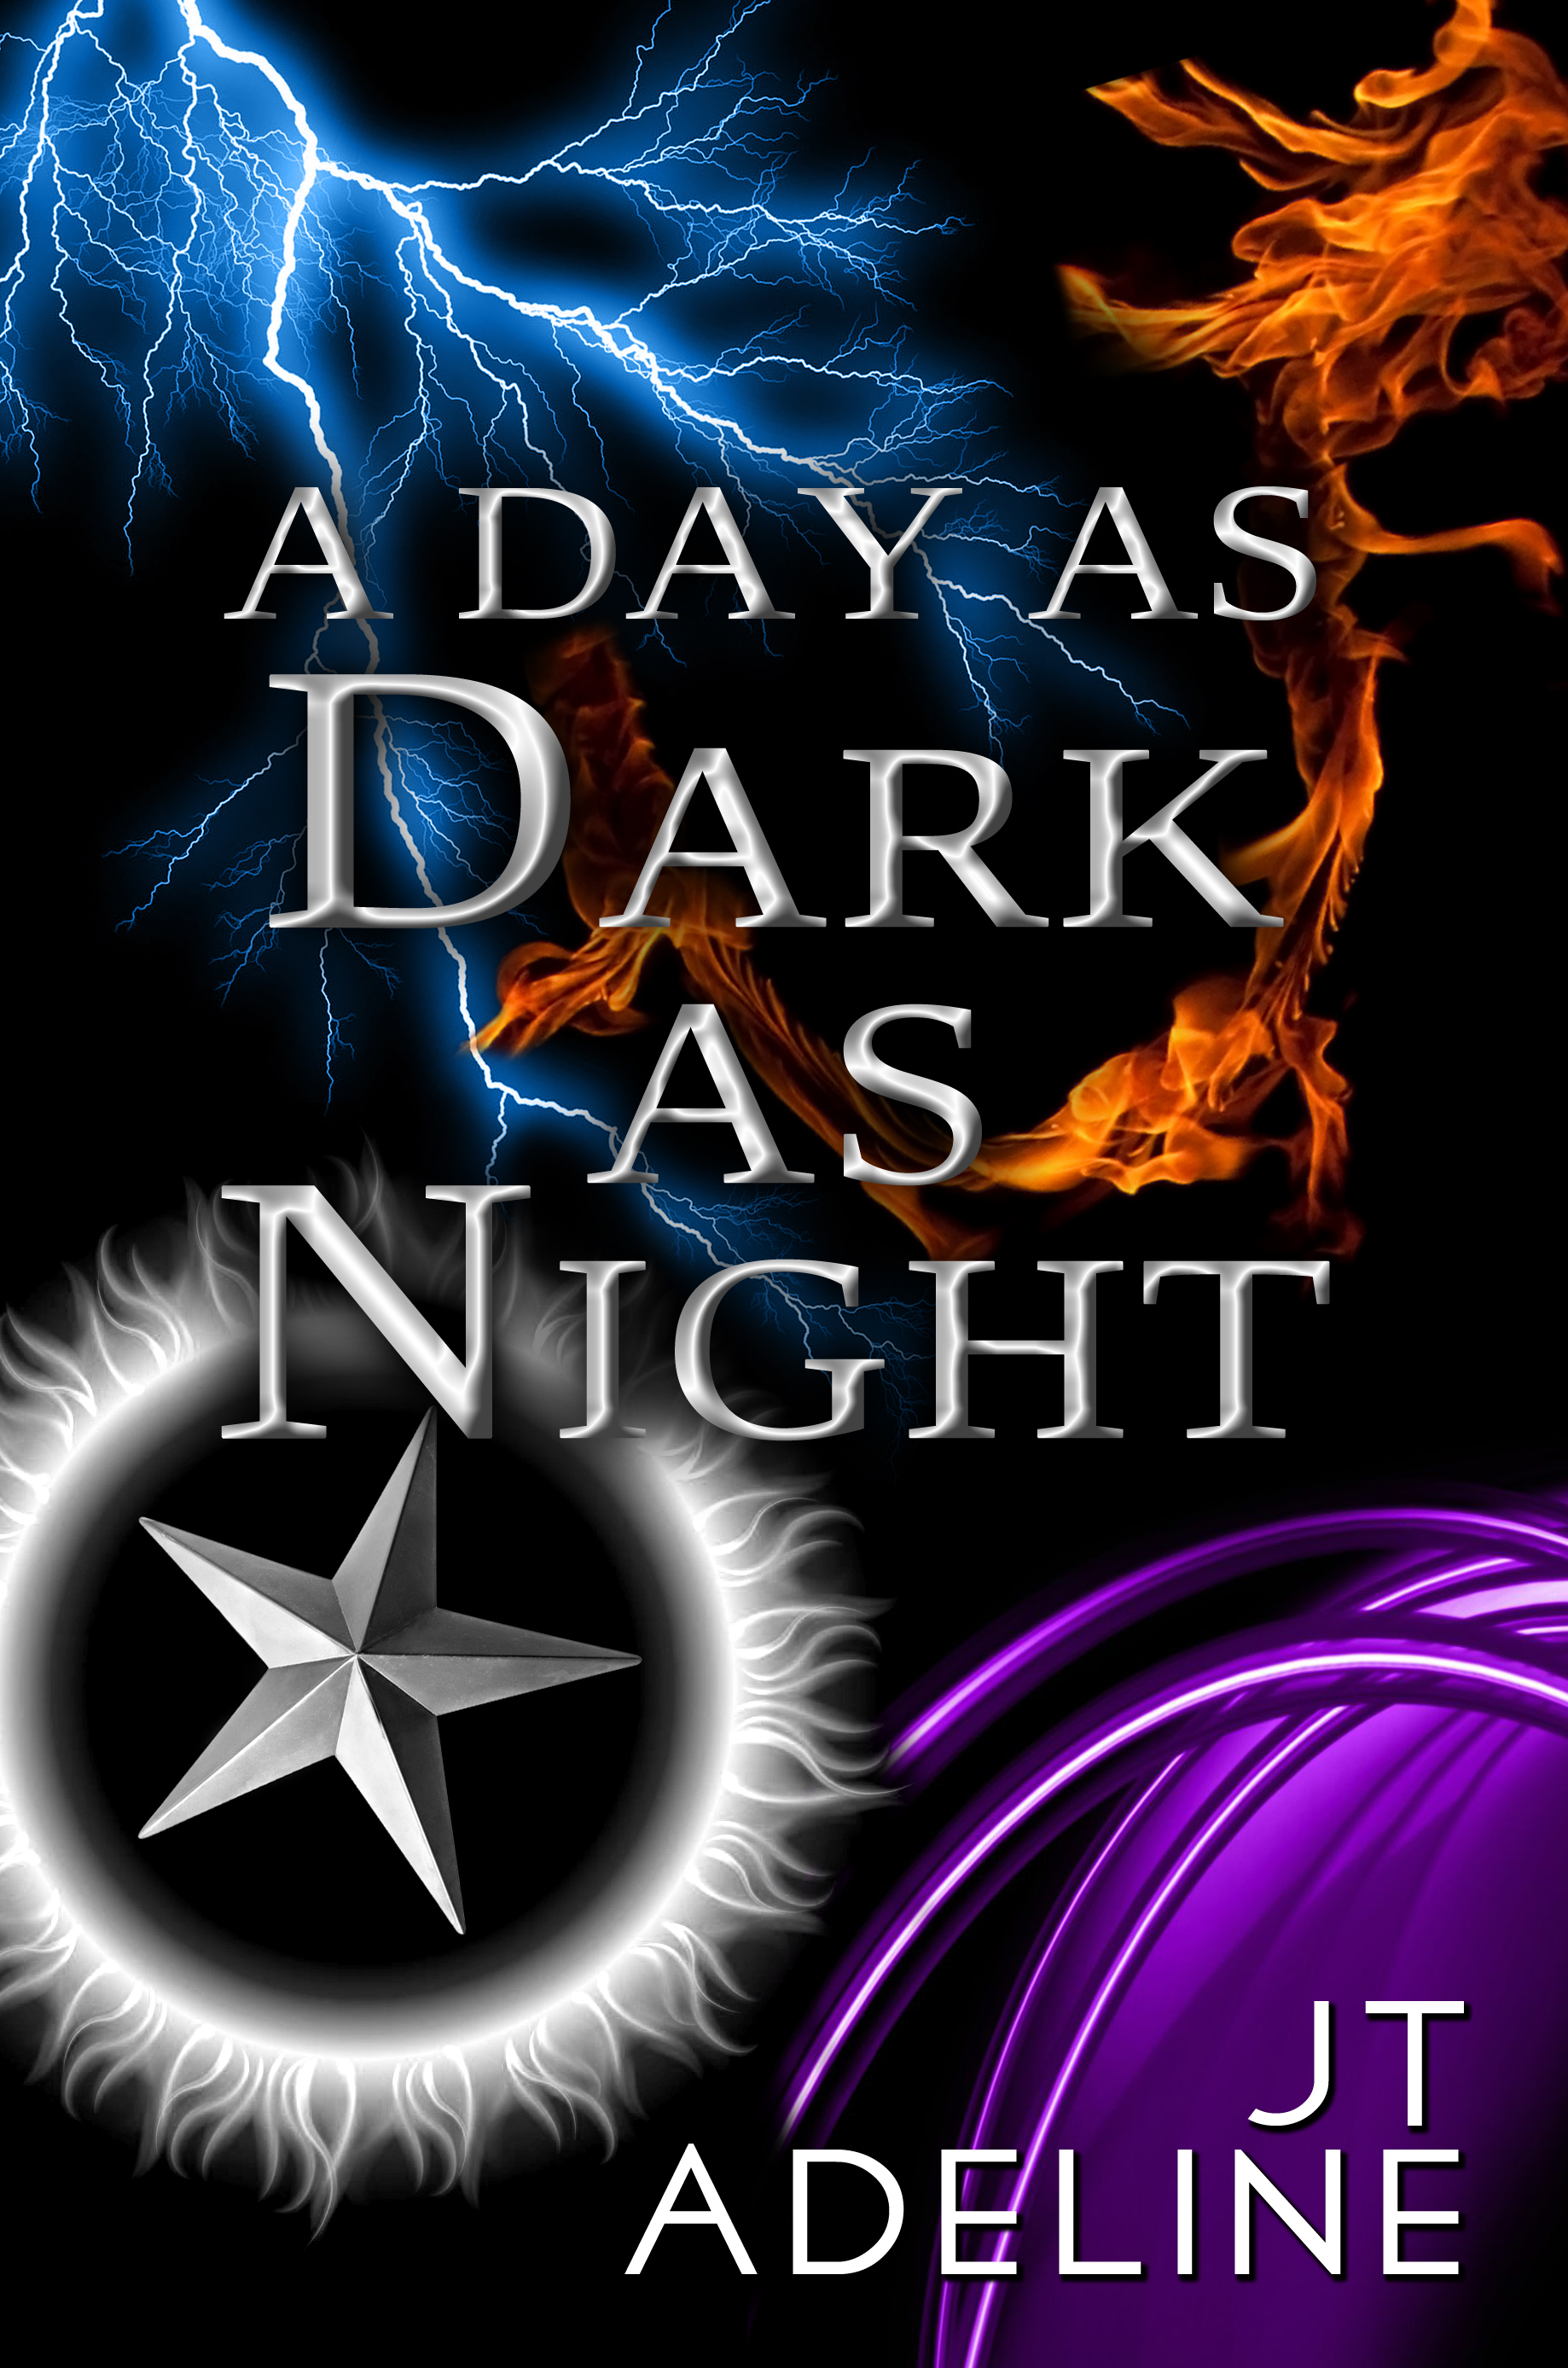 A Day as Dark as Night J.T. Adeline